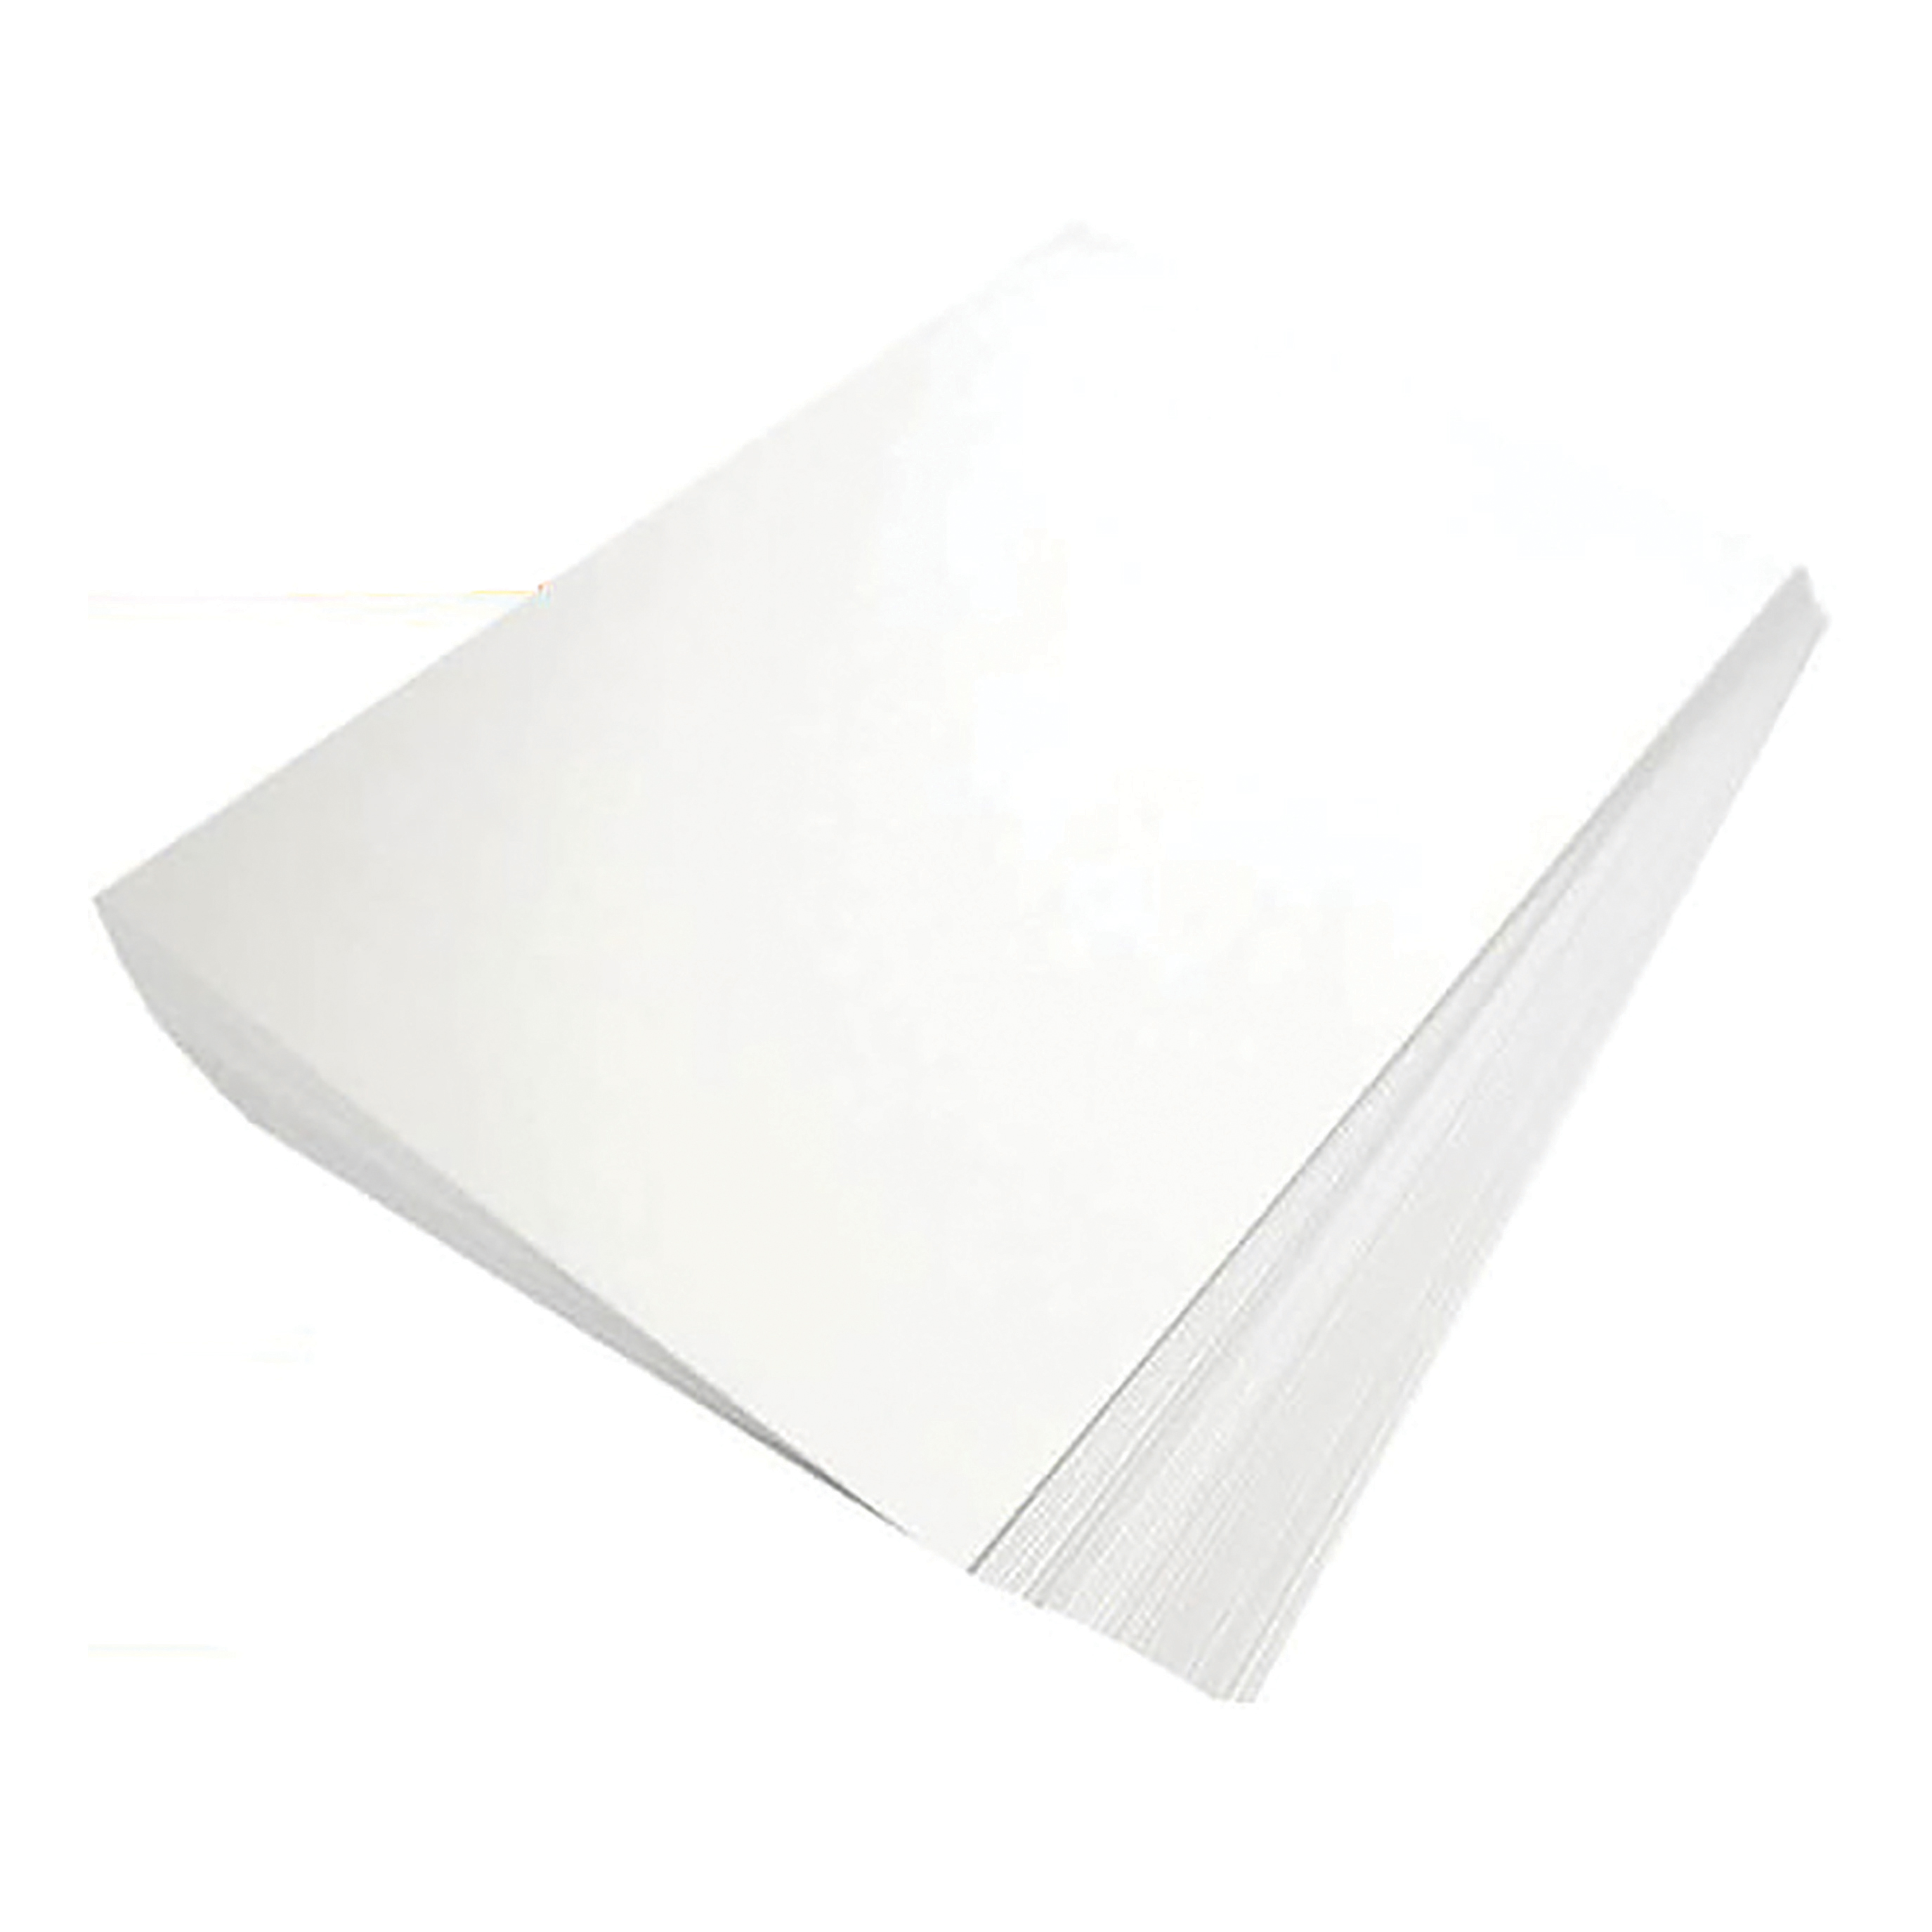 5 Star Elite Premium Business Paper Wove Finish Ream-Wrapped 100gsm A4 High White 500 Sheets